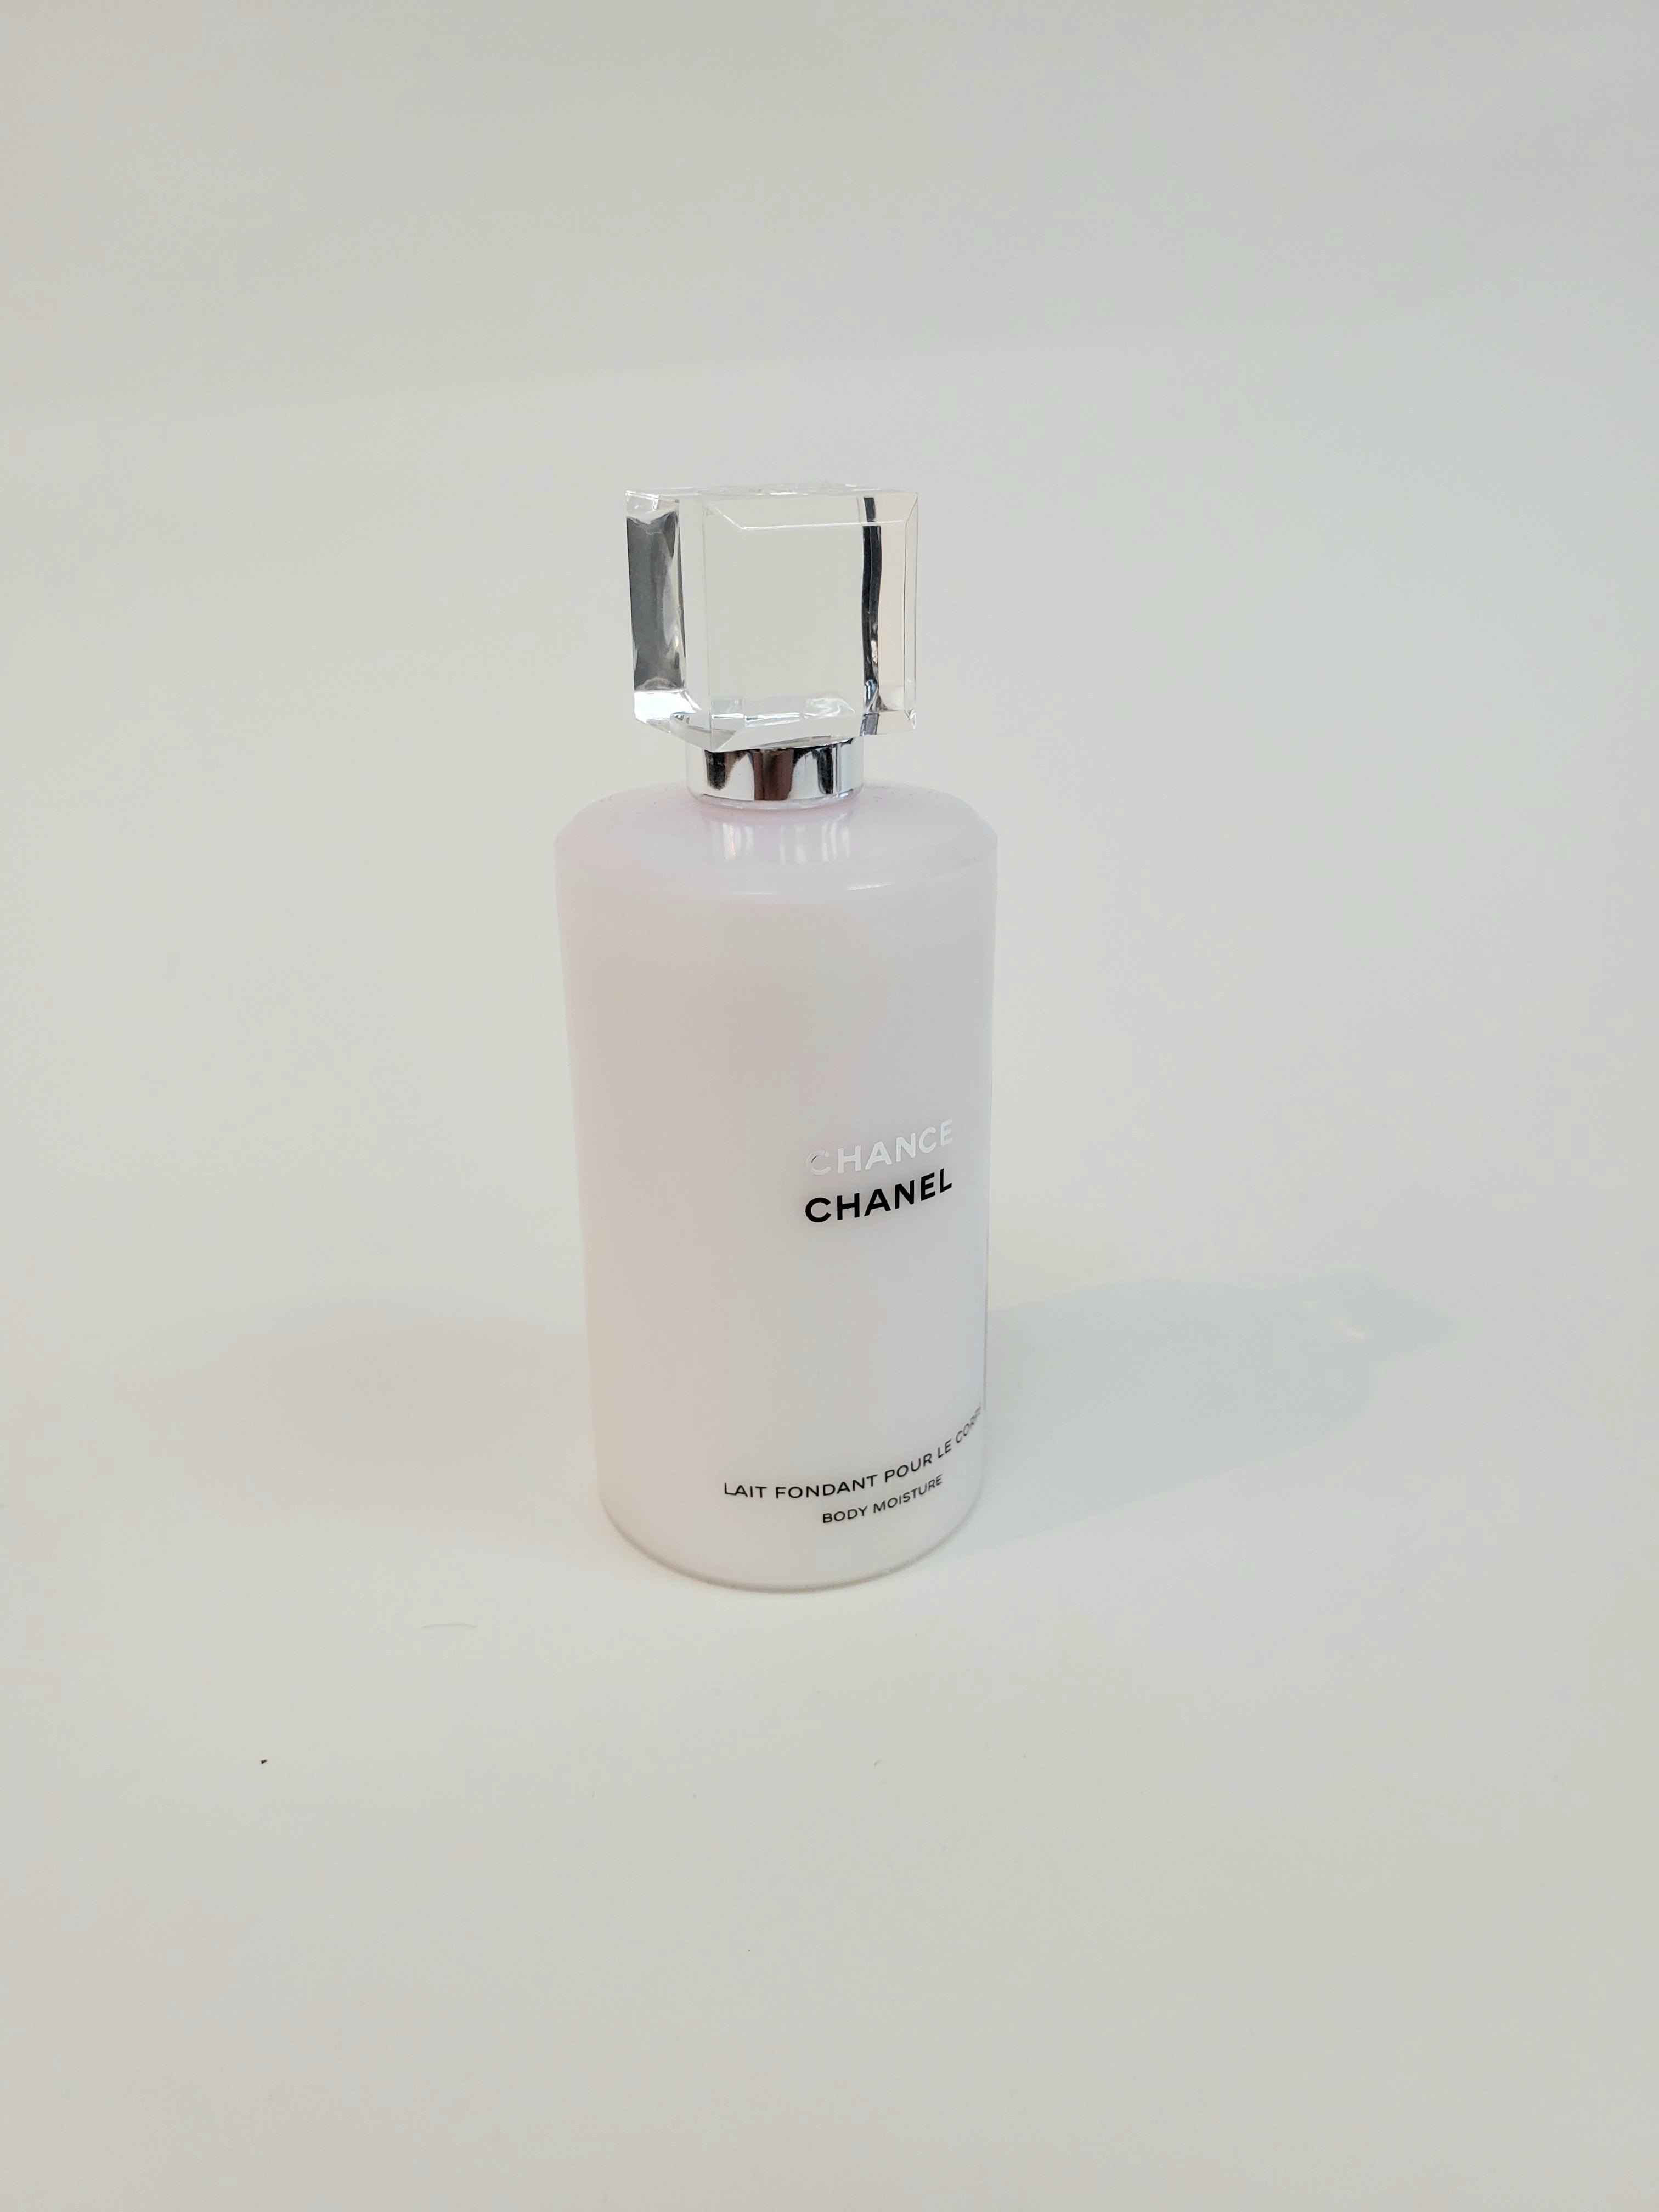 Primary Photo - BRAND: CHANEL <BR>COLOR: CREAM <BR>SIZE: 3.4 FL OZ/ 100ML<BR>SKU: 262-26241-38018<BR>AD IS GENTLY USED<BR>DESIGNER ITEM FINAL SALE